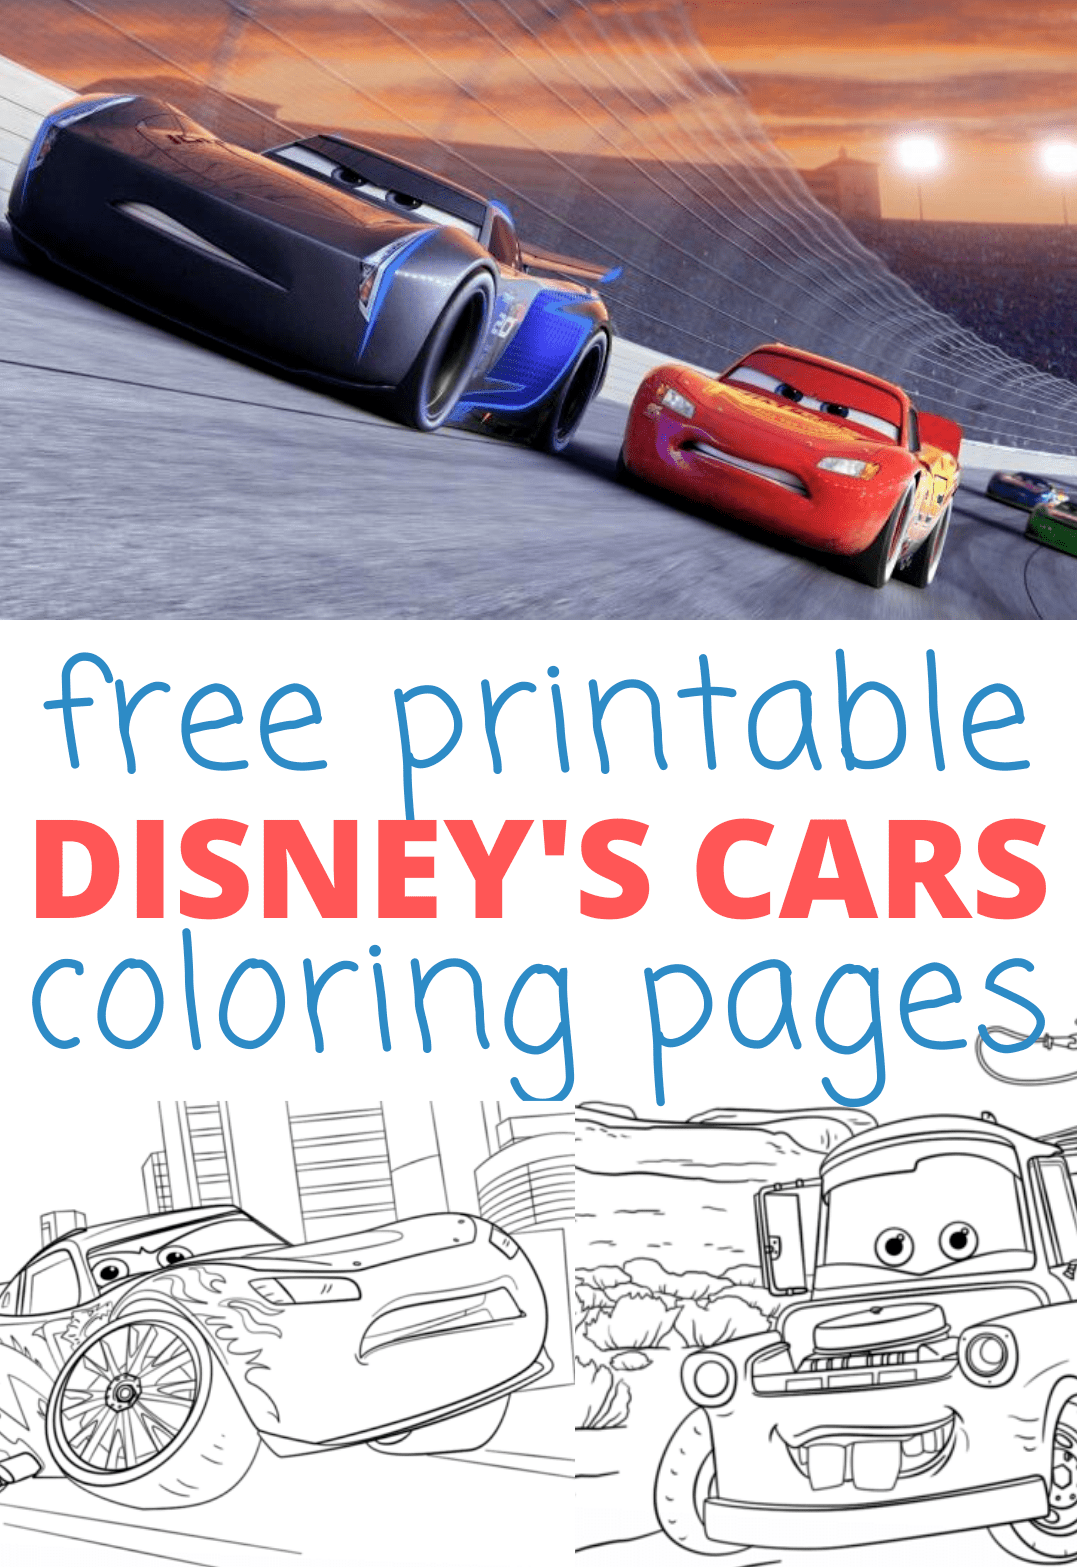 Disney Cars Coloring Pages, Printable Activities: Cars 3 In Theaters 6/16!